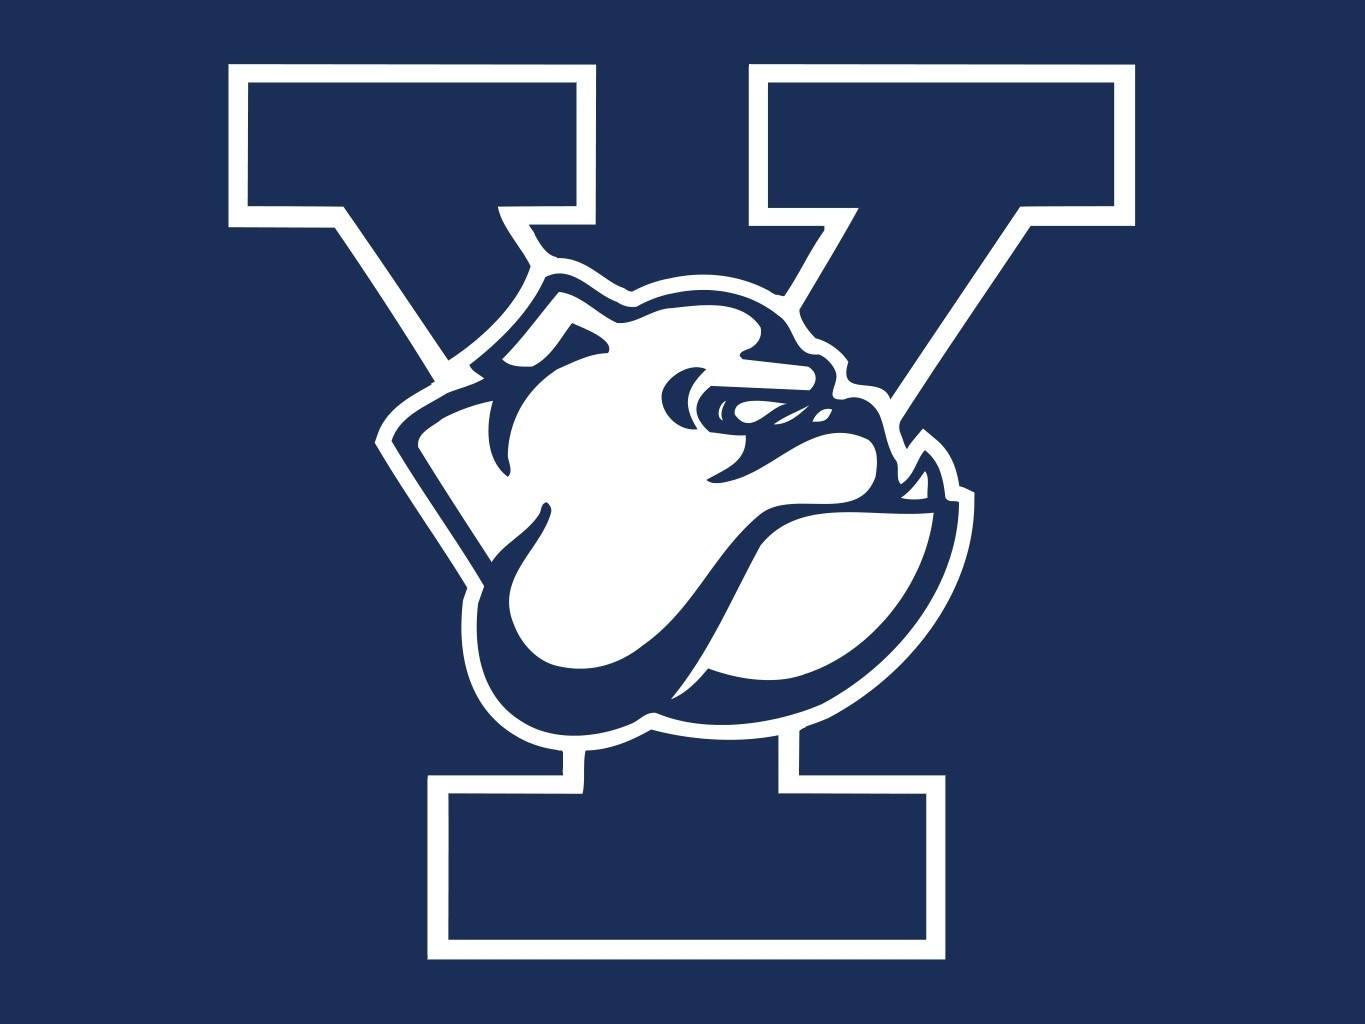 under armour enters ivy league market with yale endorsement deal